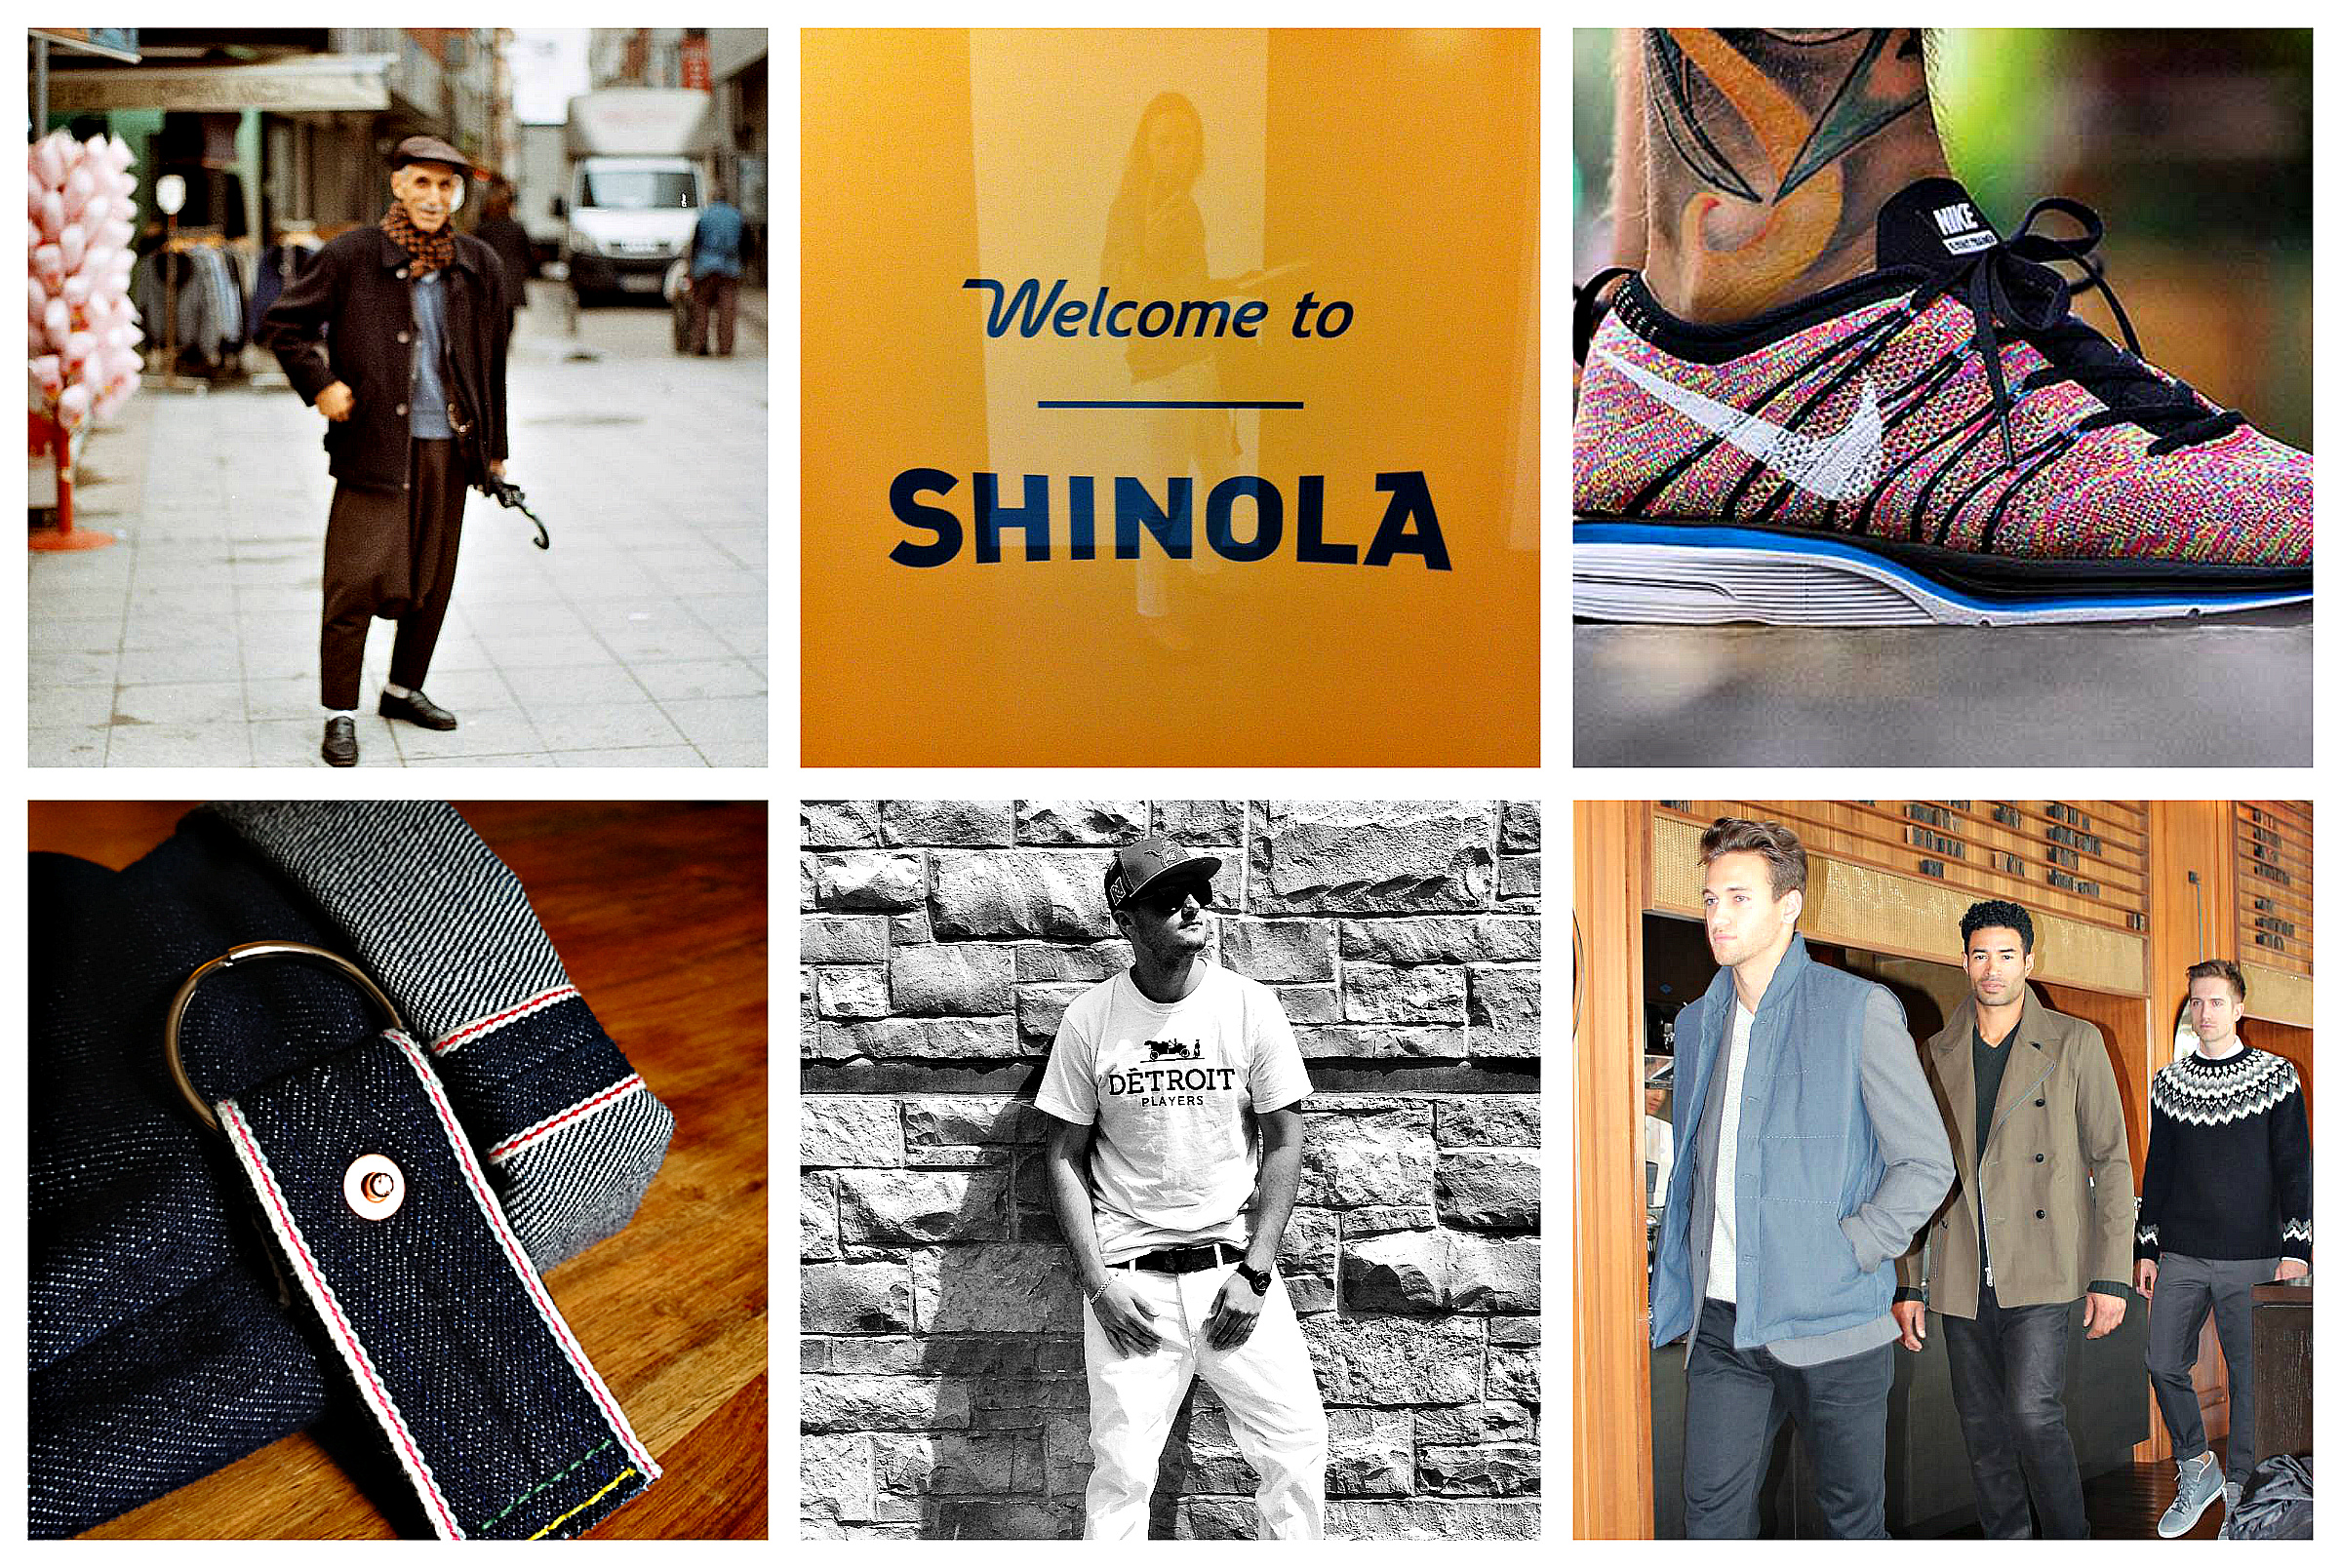 1 // gentleman, Istanbul. from  atlin's  upcoming book  s  hape of an ear    2 // my visit to  shinola  hq  3 //  high snobiety's  perfect capture of the nike flyknit+ multicolor  4 // The 16 yr old behind  unwashed denim   5 // briggs goldberg's  détroit players  tee 6 // fall13 preview with vince